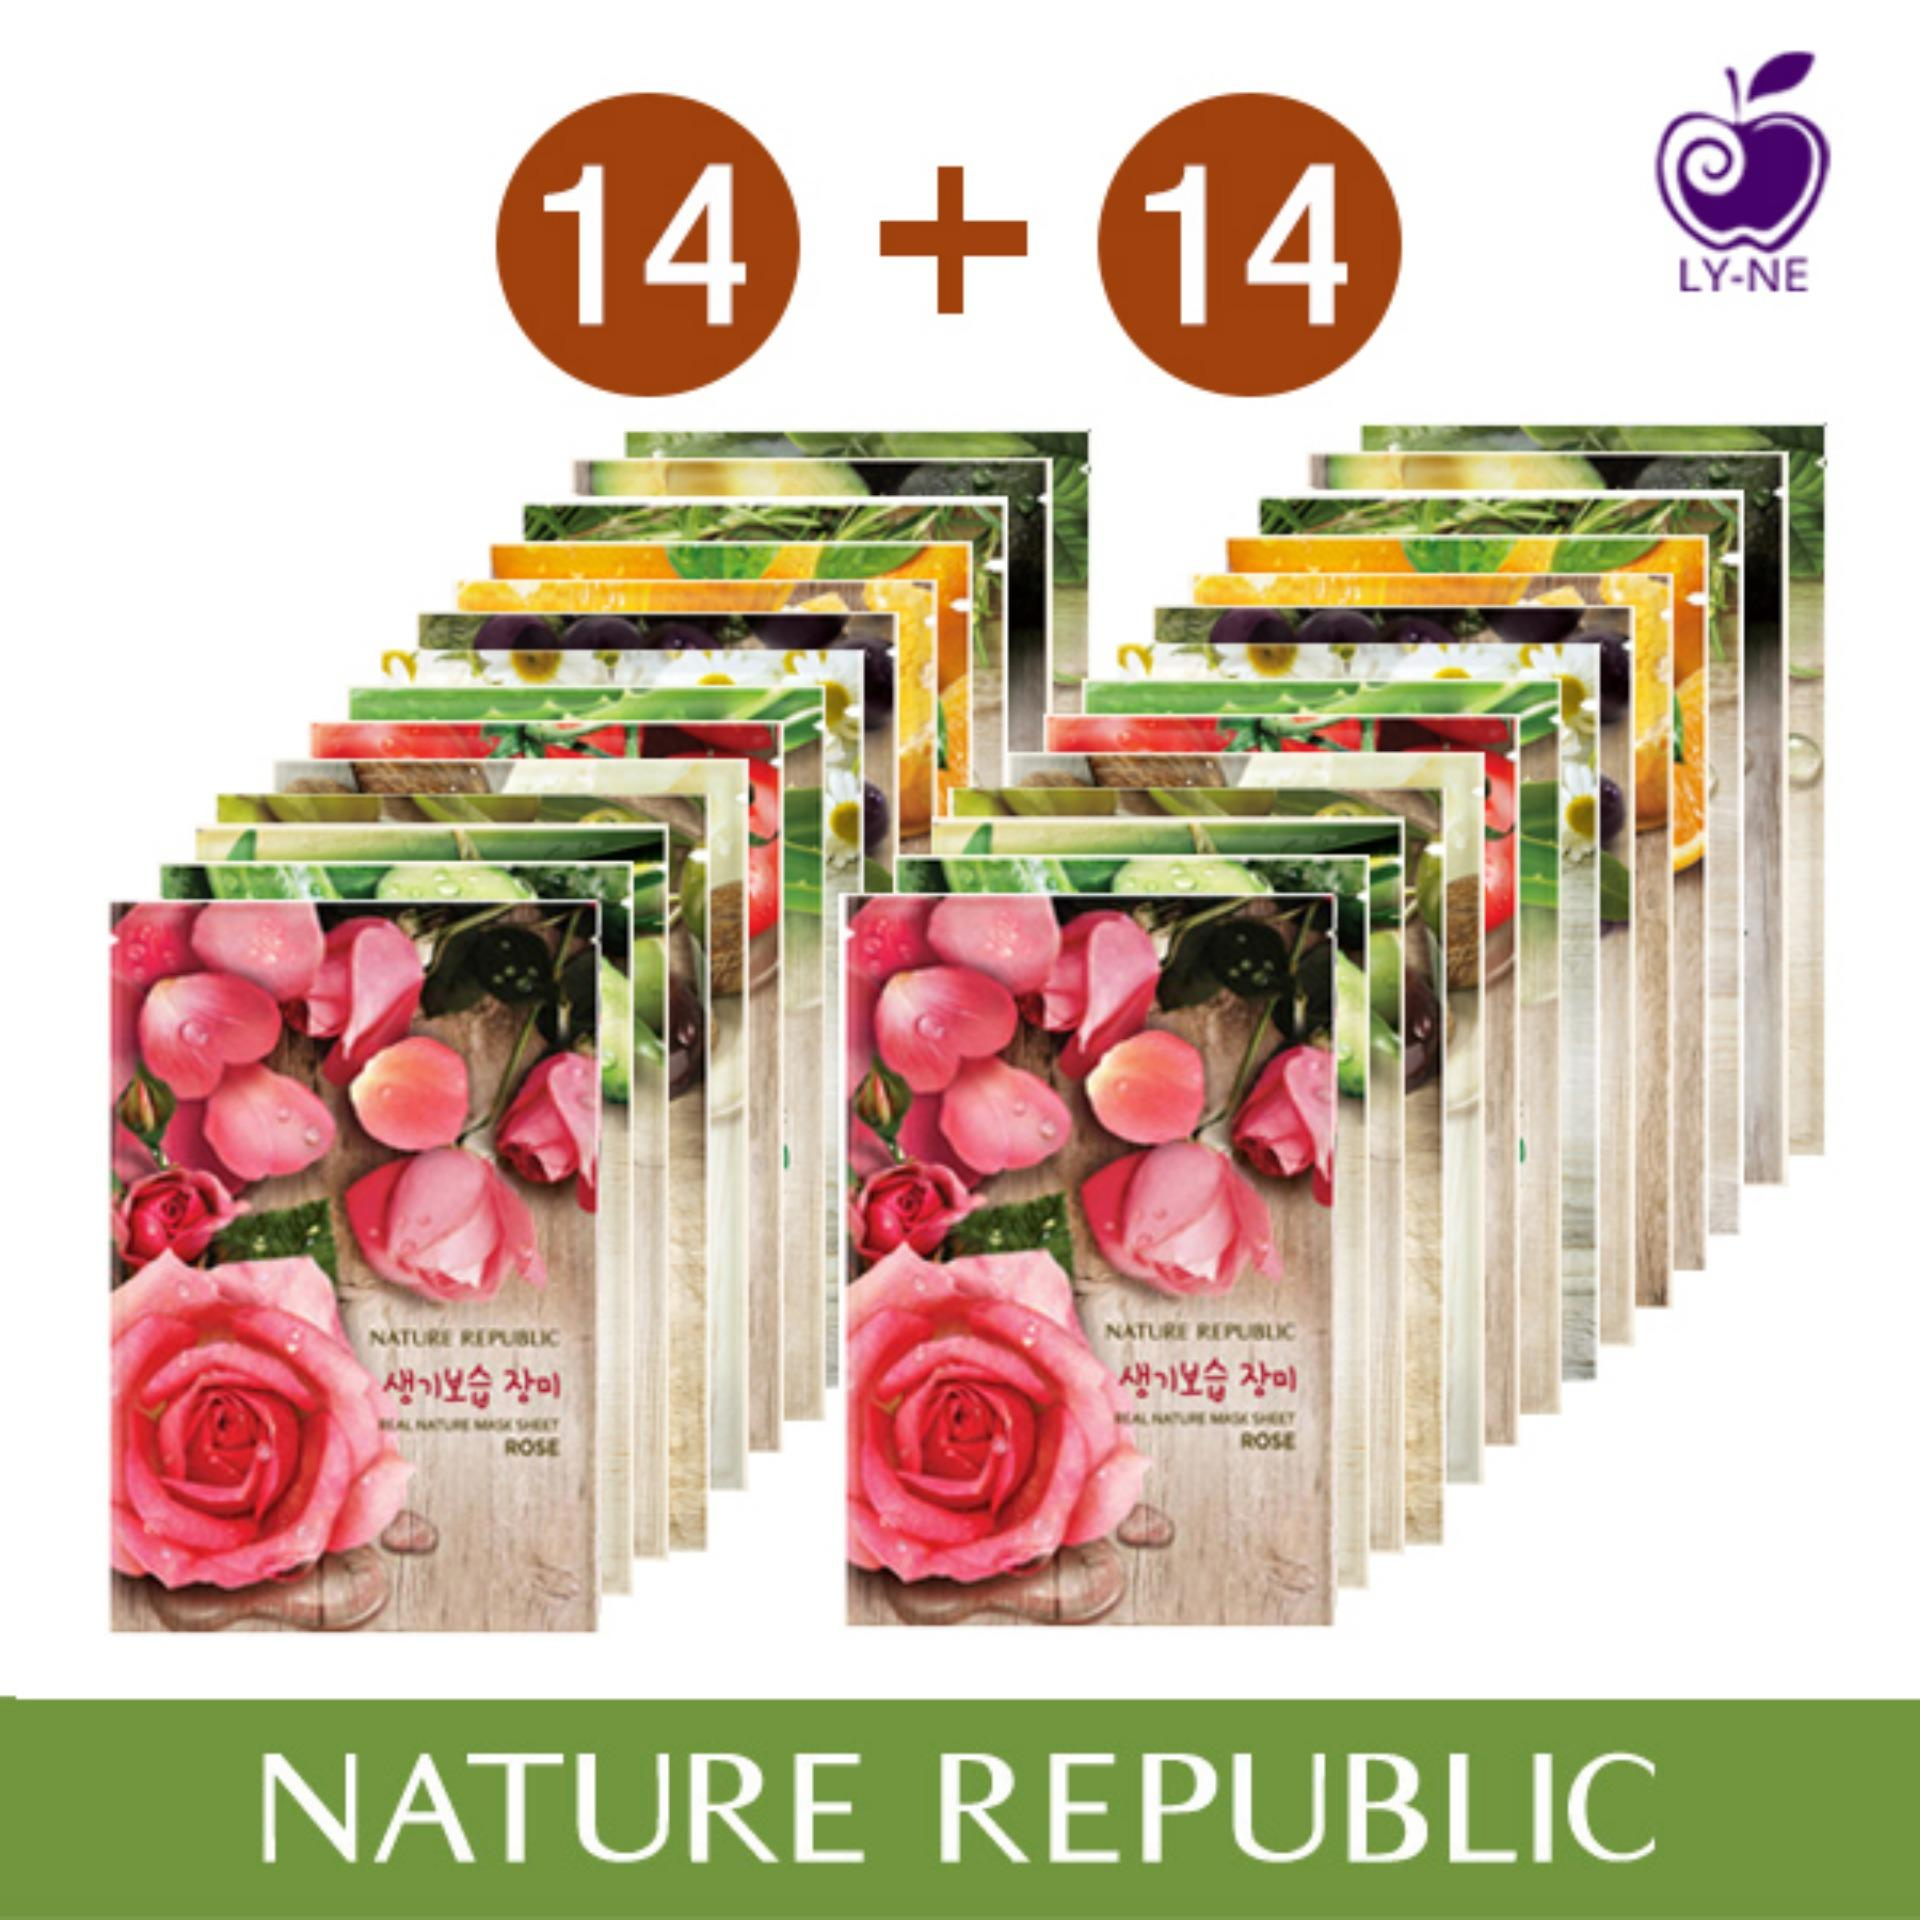 Nature Republic Real Nature Mask Sheet X 28 Rose Orange Avocado Royal Jelly Shea Butter Chamomile Green Tea Teatree Aloe Cucumber Tomato Acaiberry Bamboo Olive Price Comparison